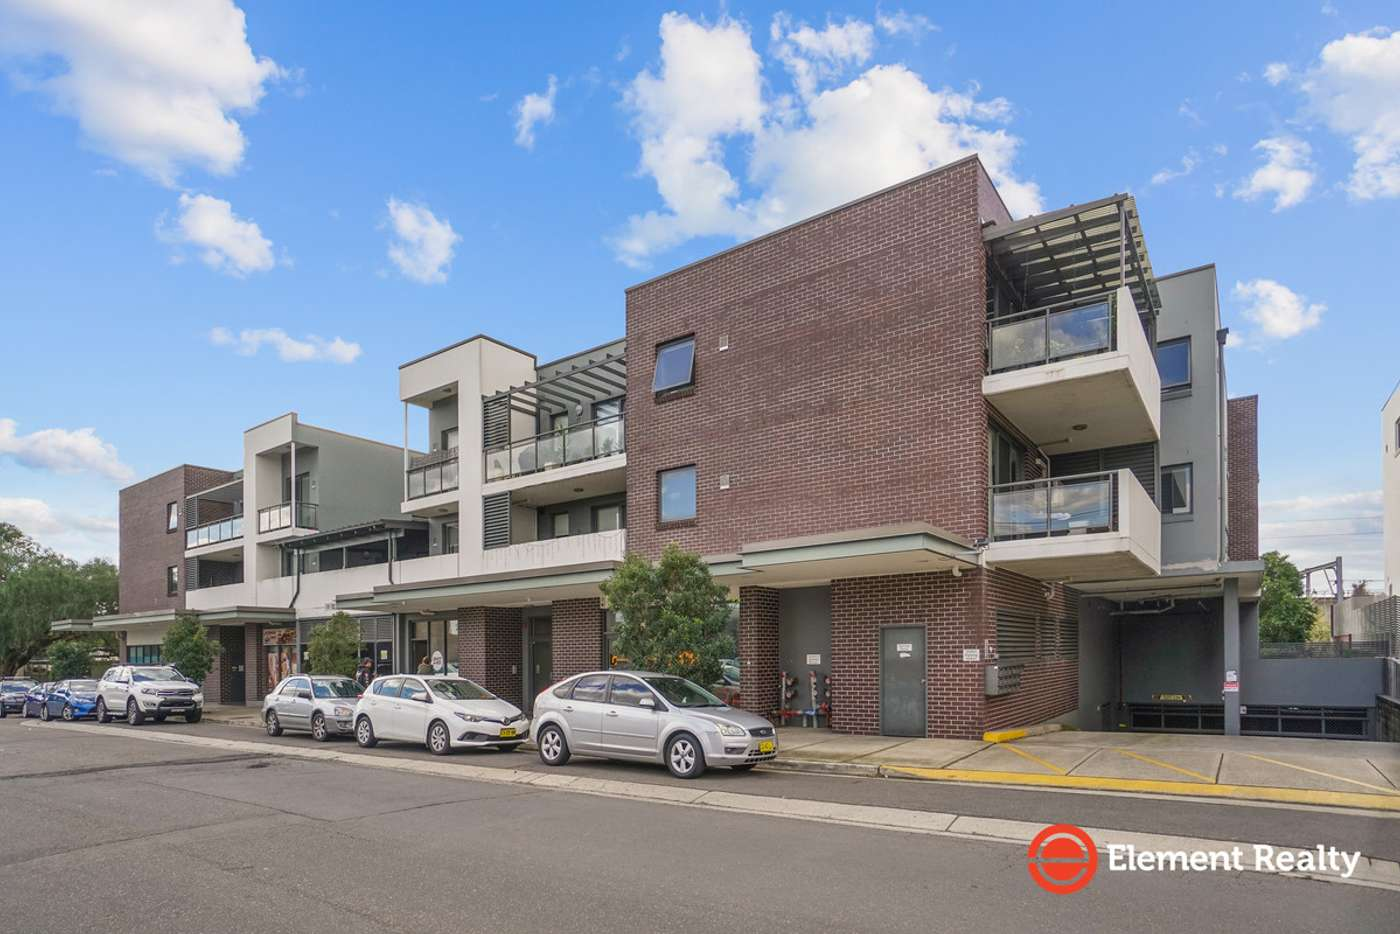 Main view of Homely apartment listing, 13/121-127 Railway Parade, Granville NSW 2142